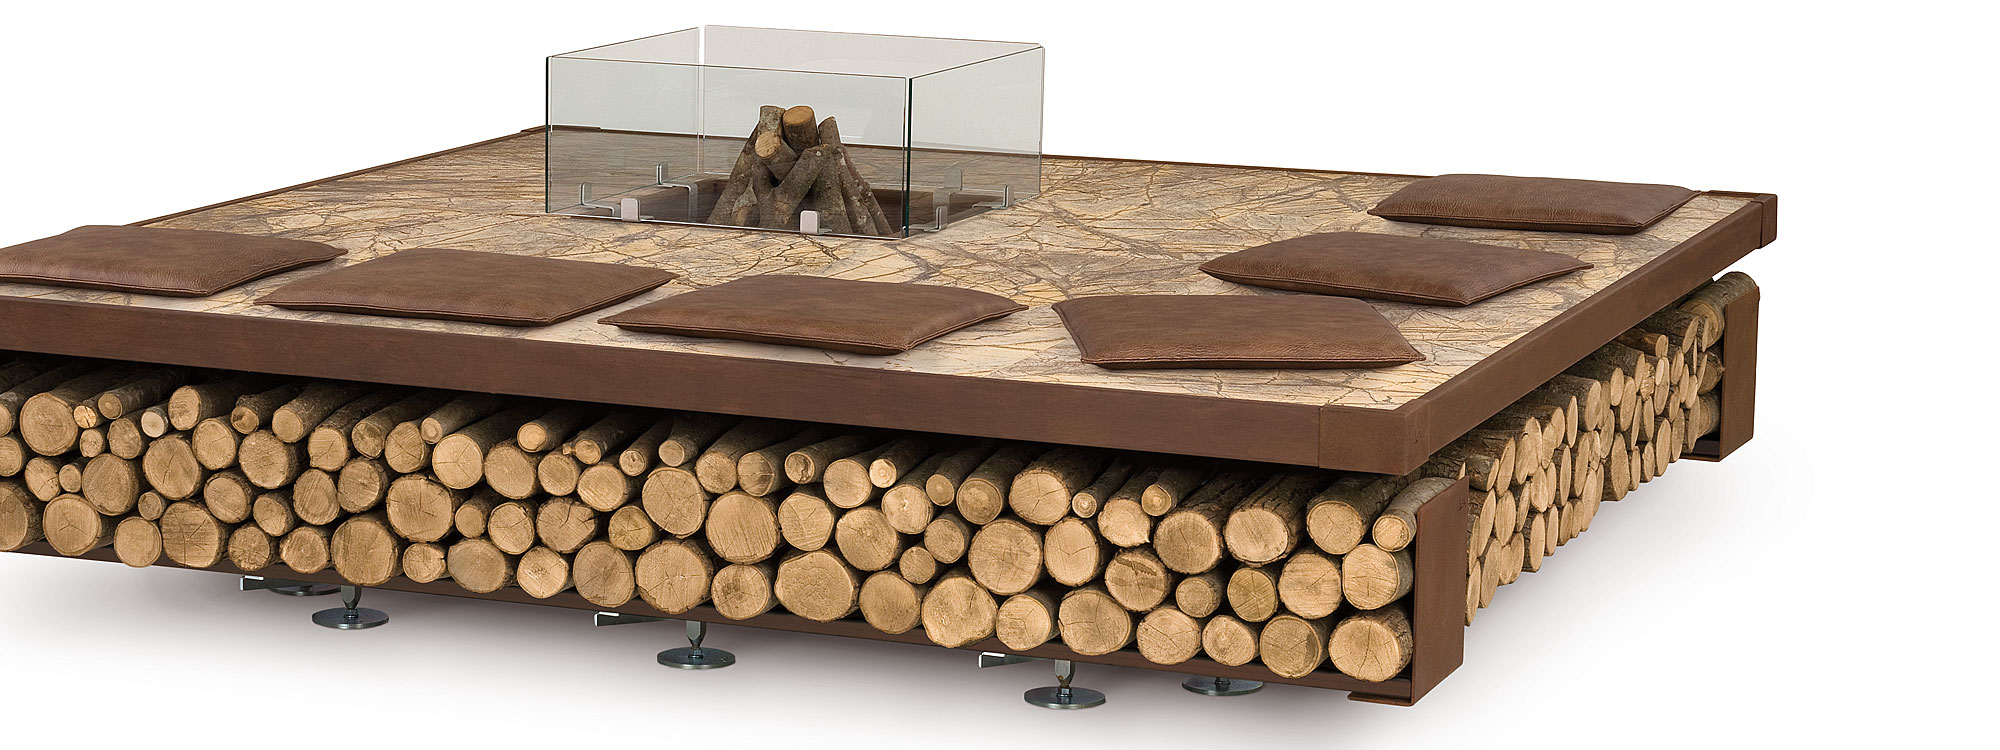 AK47 Opera fire pit – square modern architectural fire pit in Rain Forest brown marble and oxidised steel